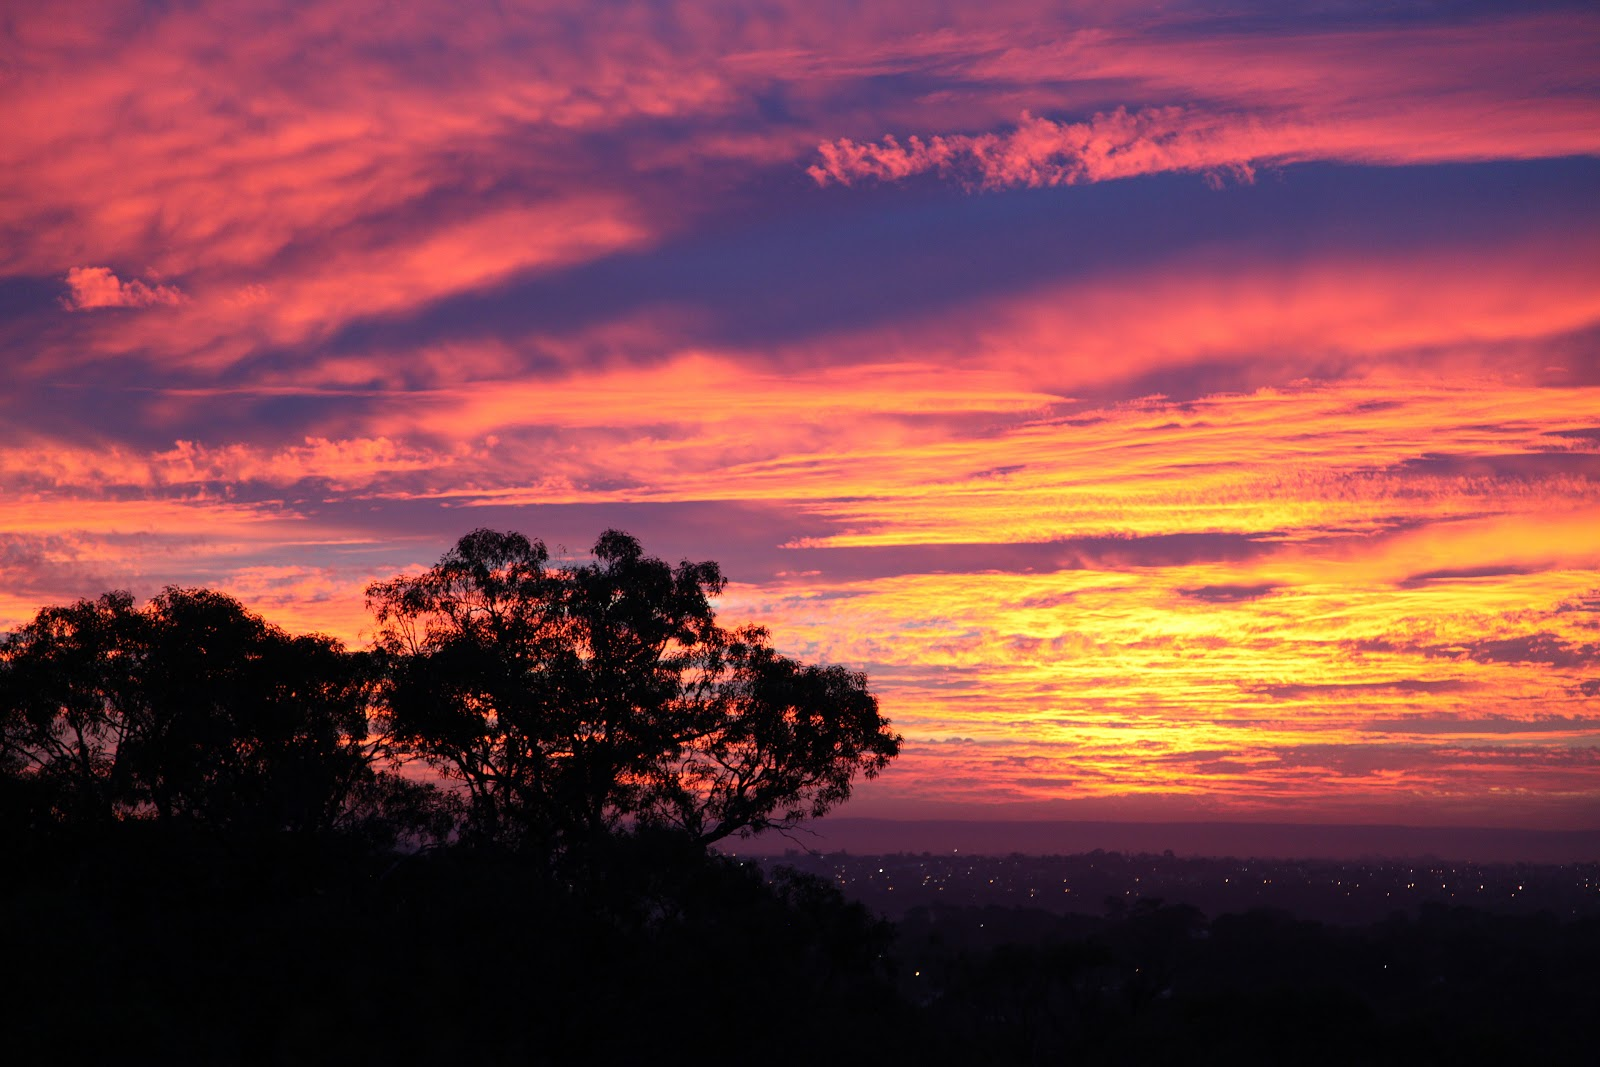 Perth and other places sunrise this morning for Morning sunrise images